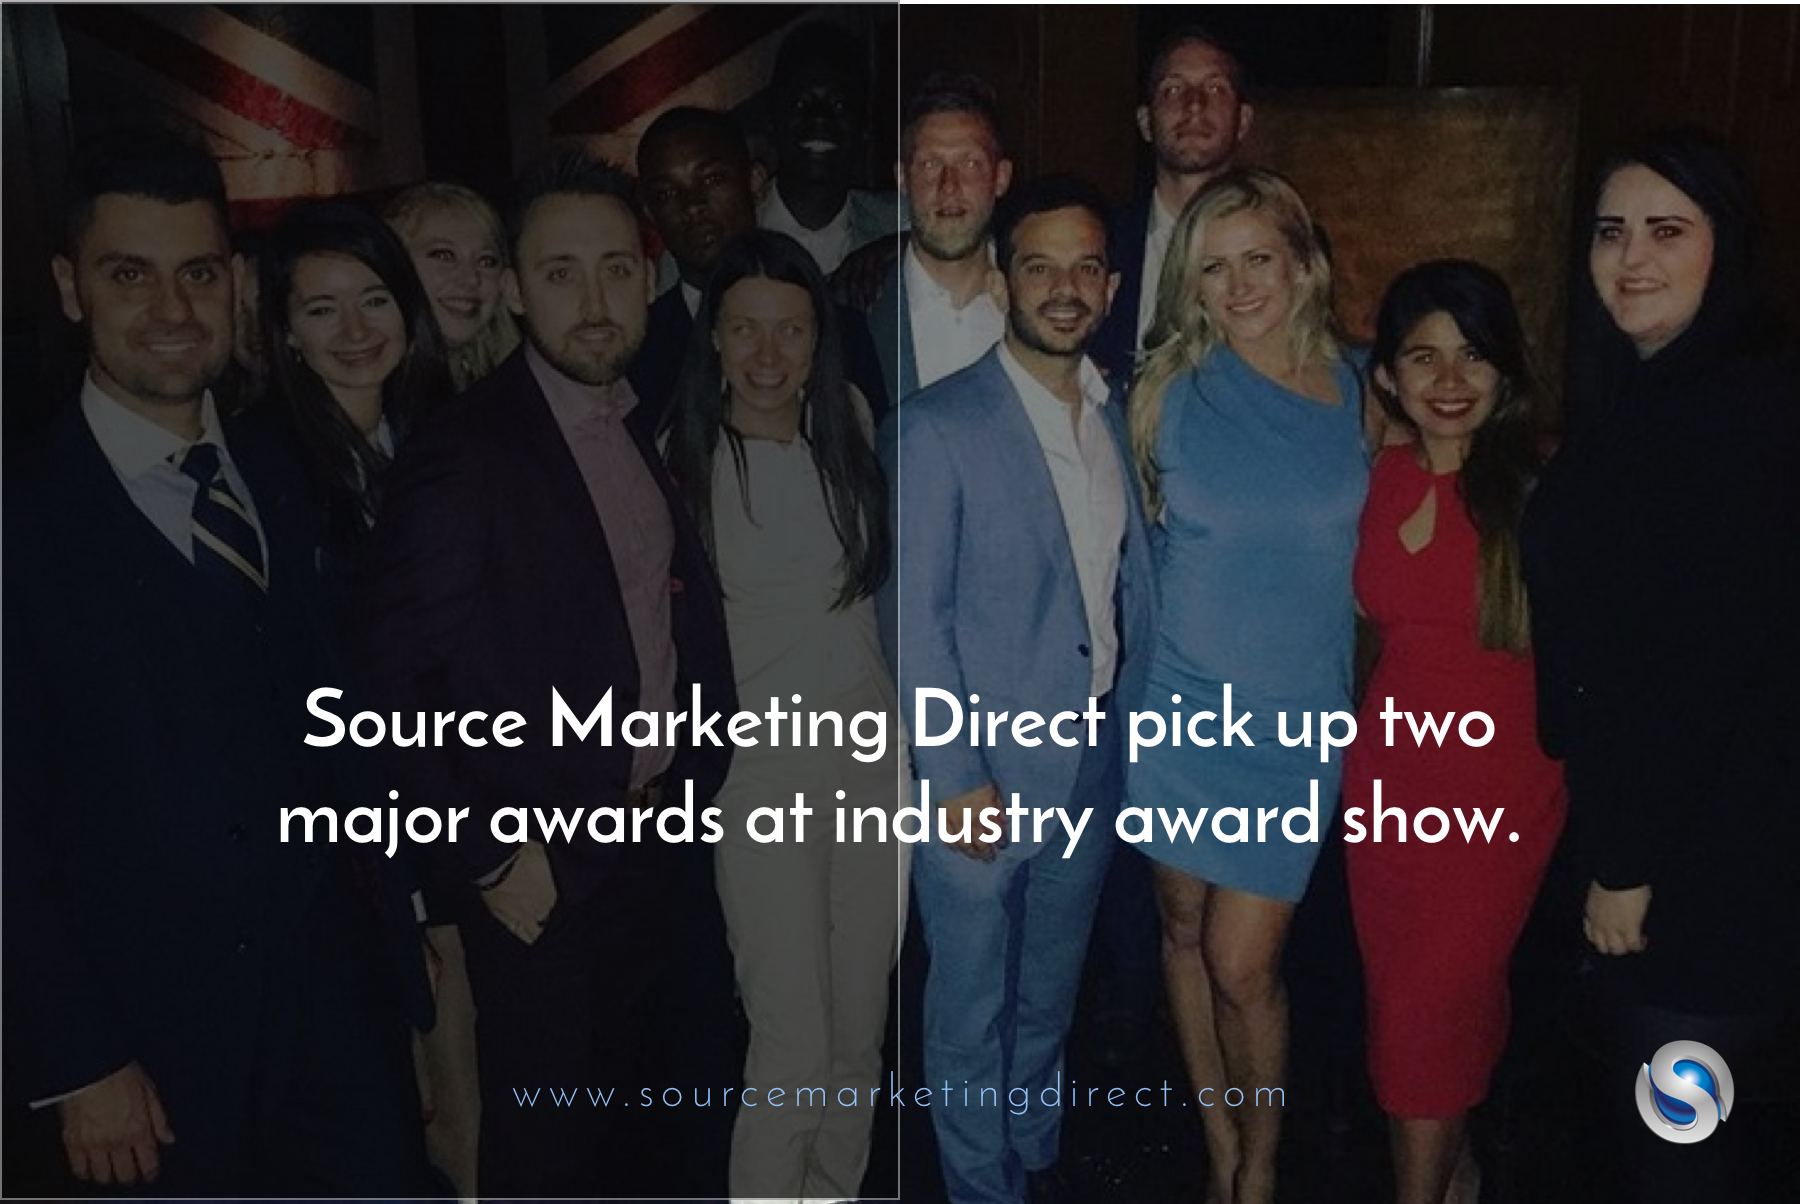 Source Marketing Direct pick up two major awards at industry award show.